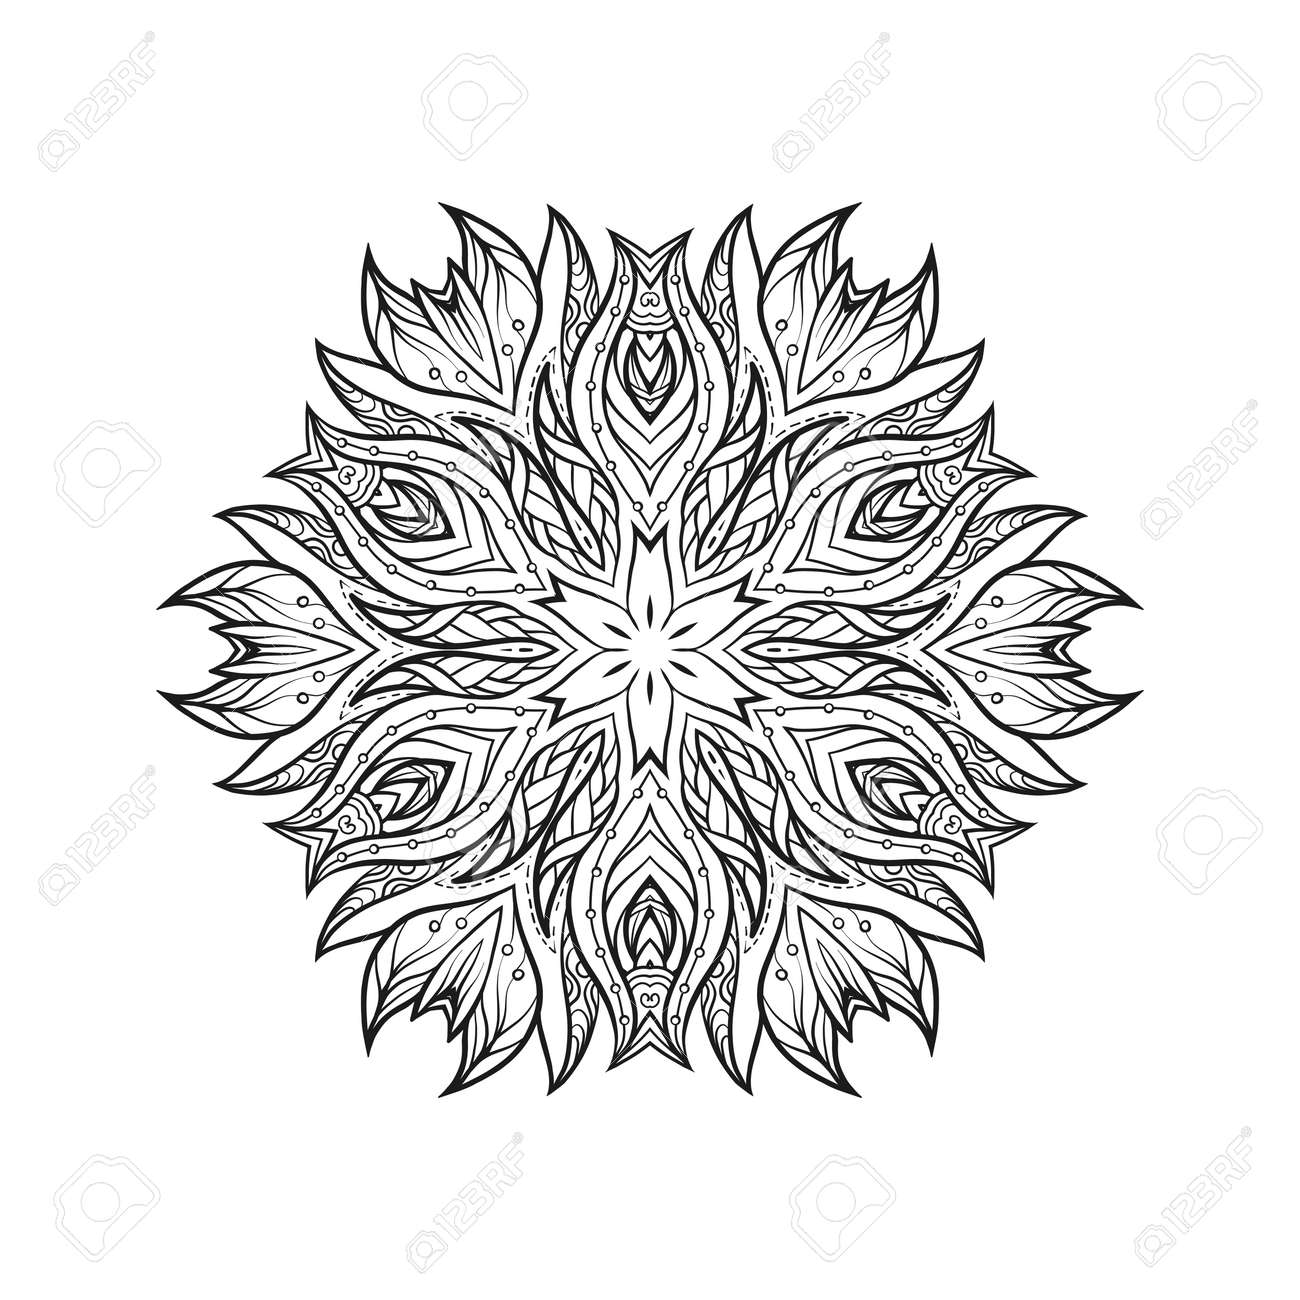 Coloriage A Colorier En Ligne Adulte.Deco Mandala Patterned Element Amulette Ethnique Anti Stress